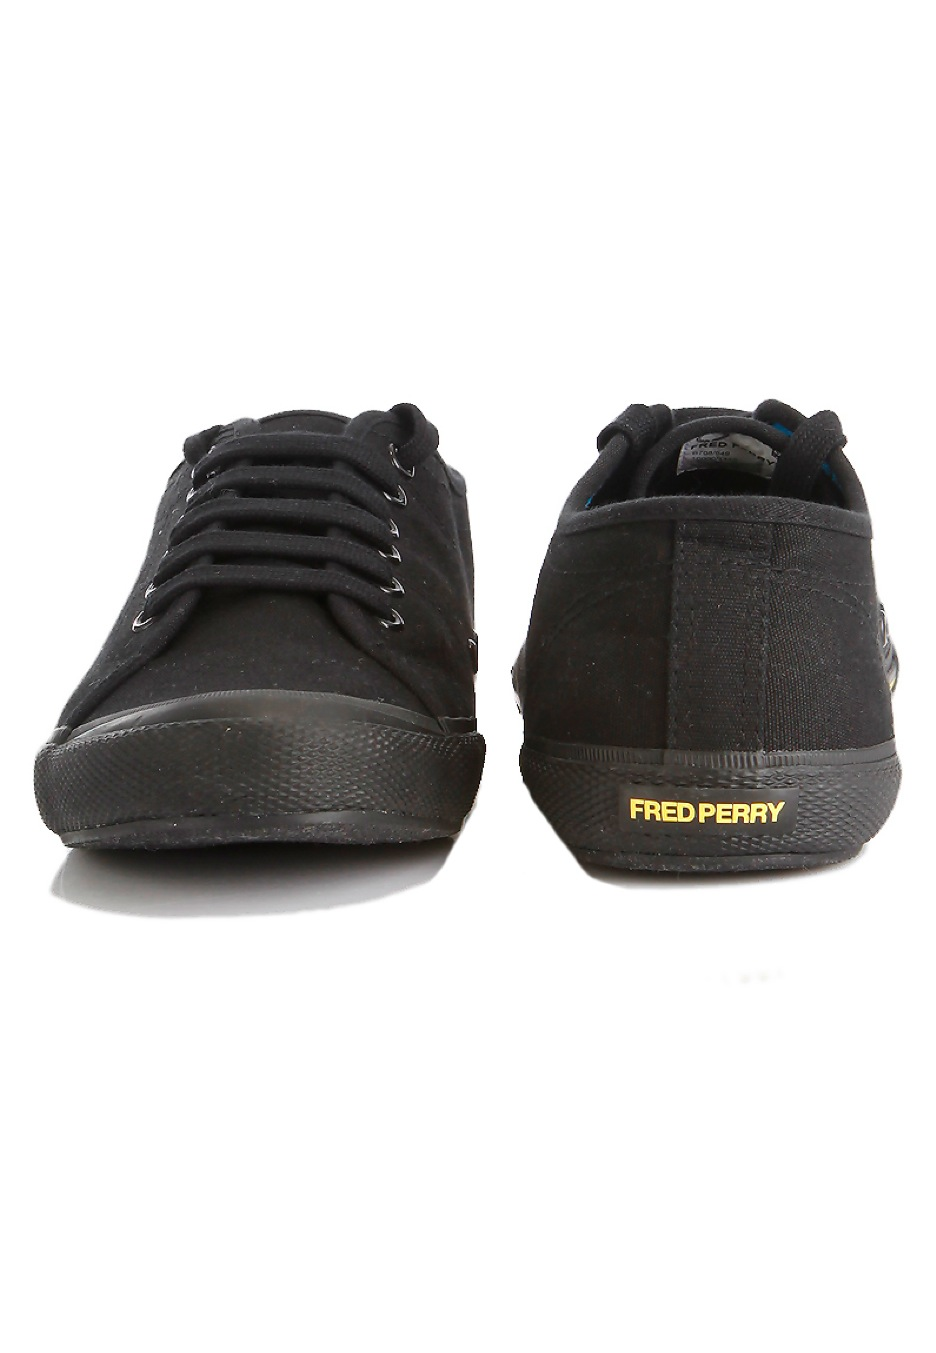 Black And Yellow Fred Perry Shoes